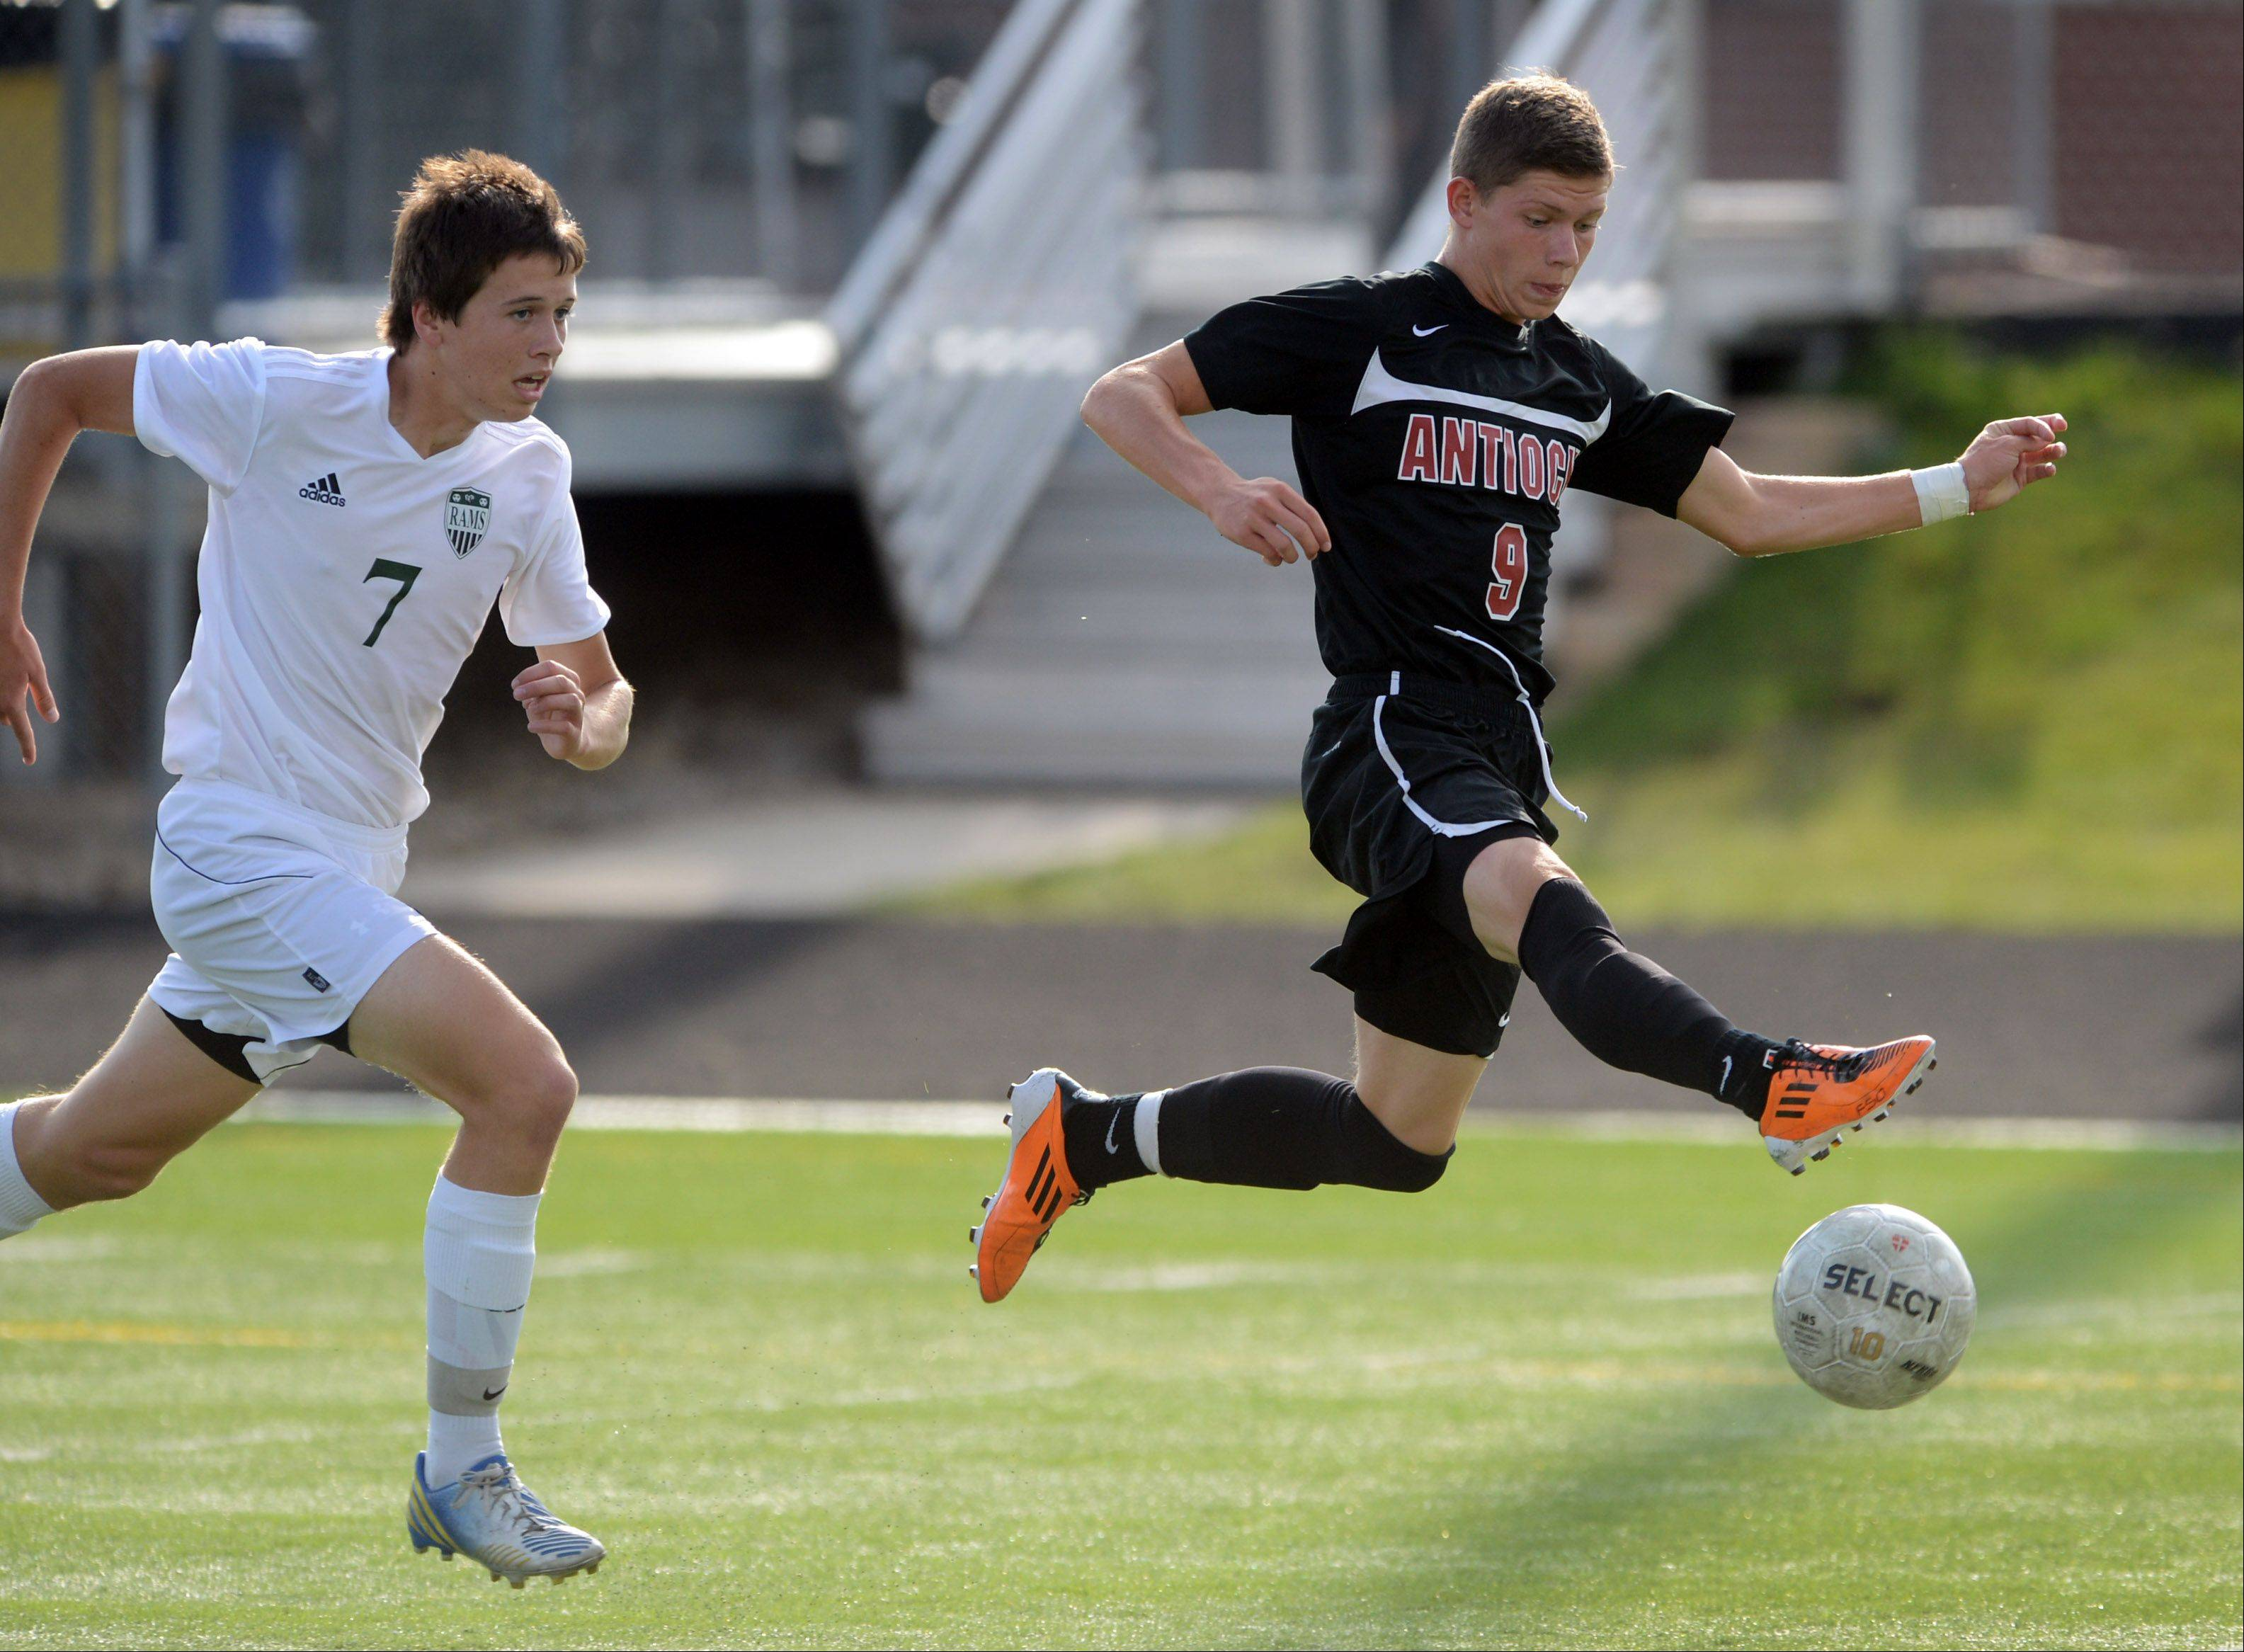 Antioch's Krystian Streit (9) controls the ball ahead of Grayslake Central's John Moroney during Wendesday's soccer match in Grayslake.